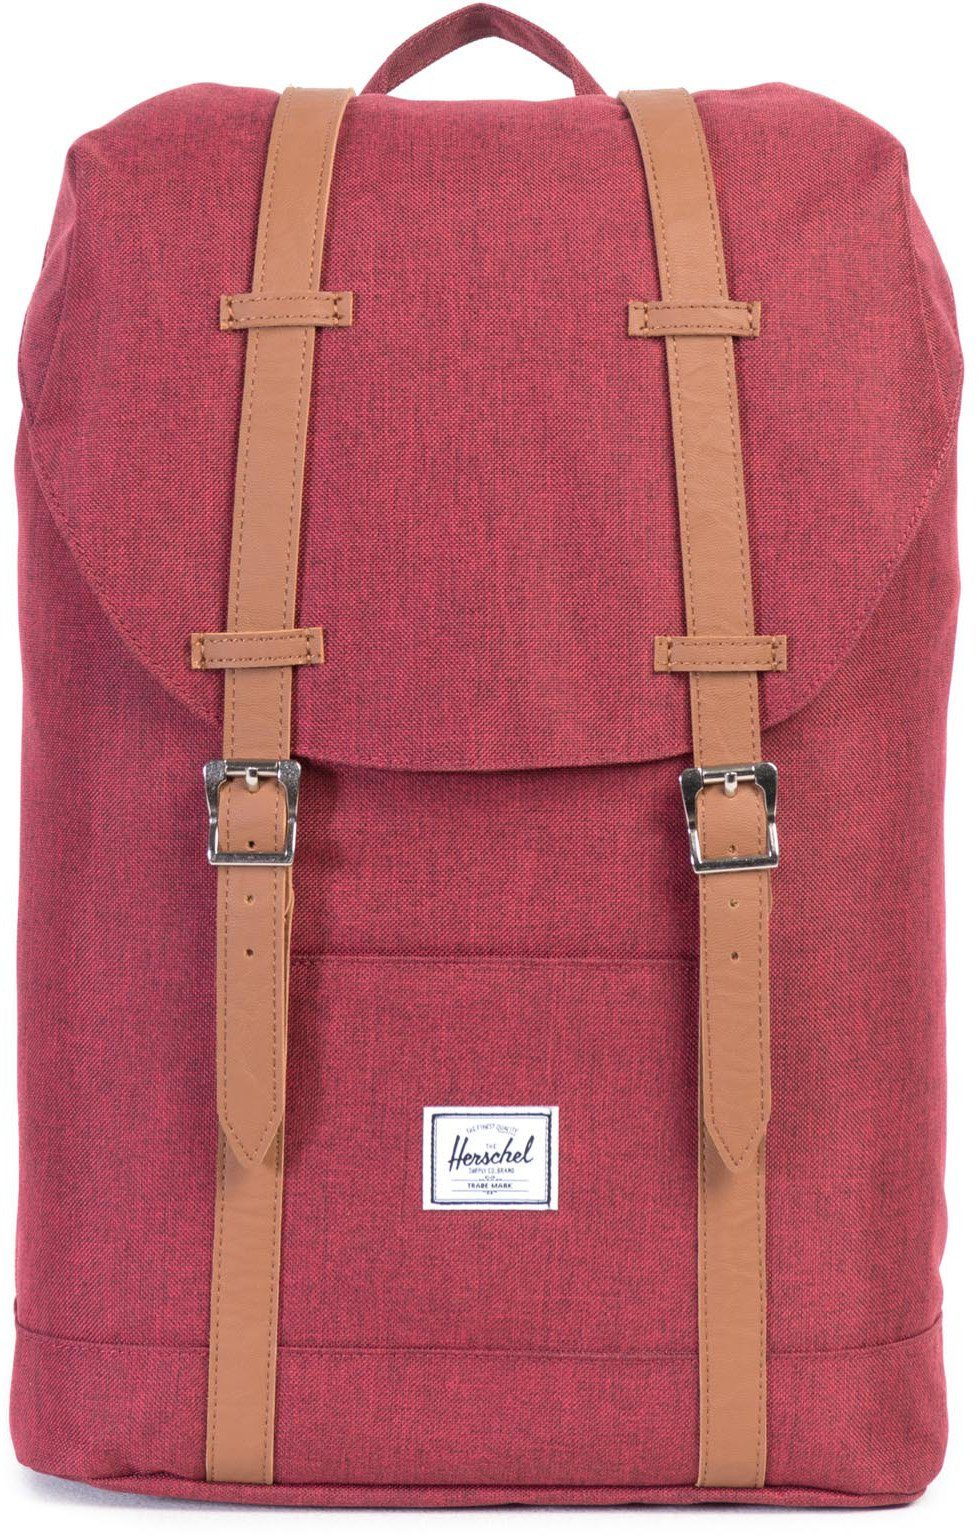 Herschel Rucksack mit Laptopfach, »Retreat Backpack, Winetasting Crosshatch, Mid Volume«